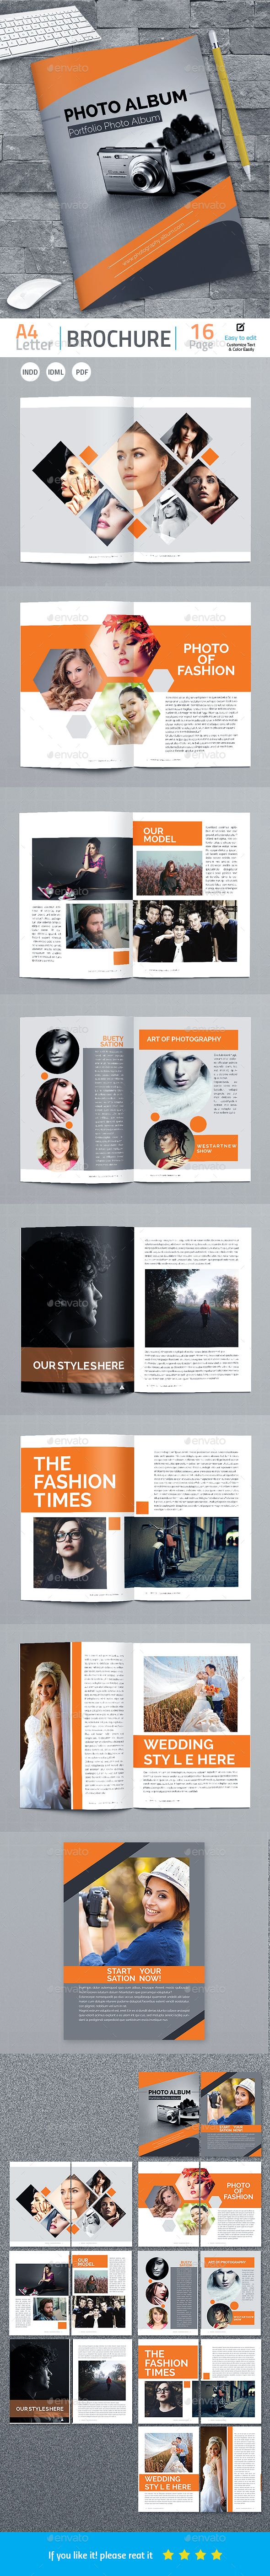 Photo Album Template InDesign INDD 16